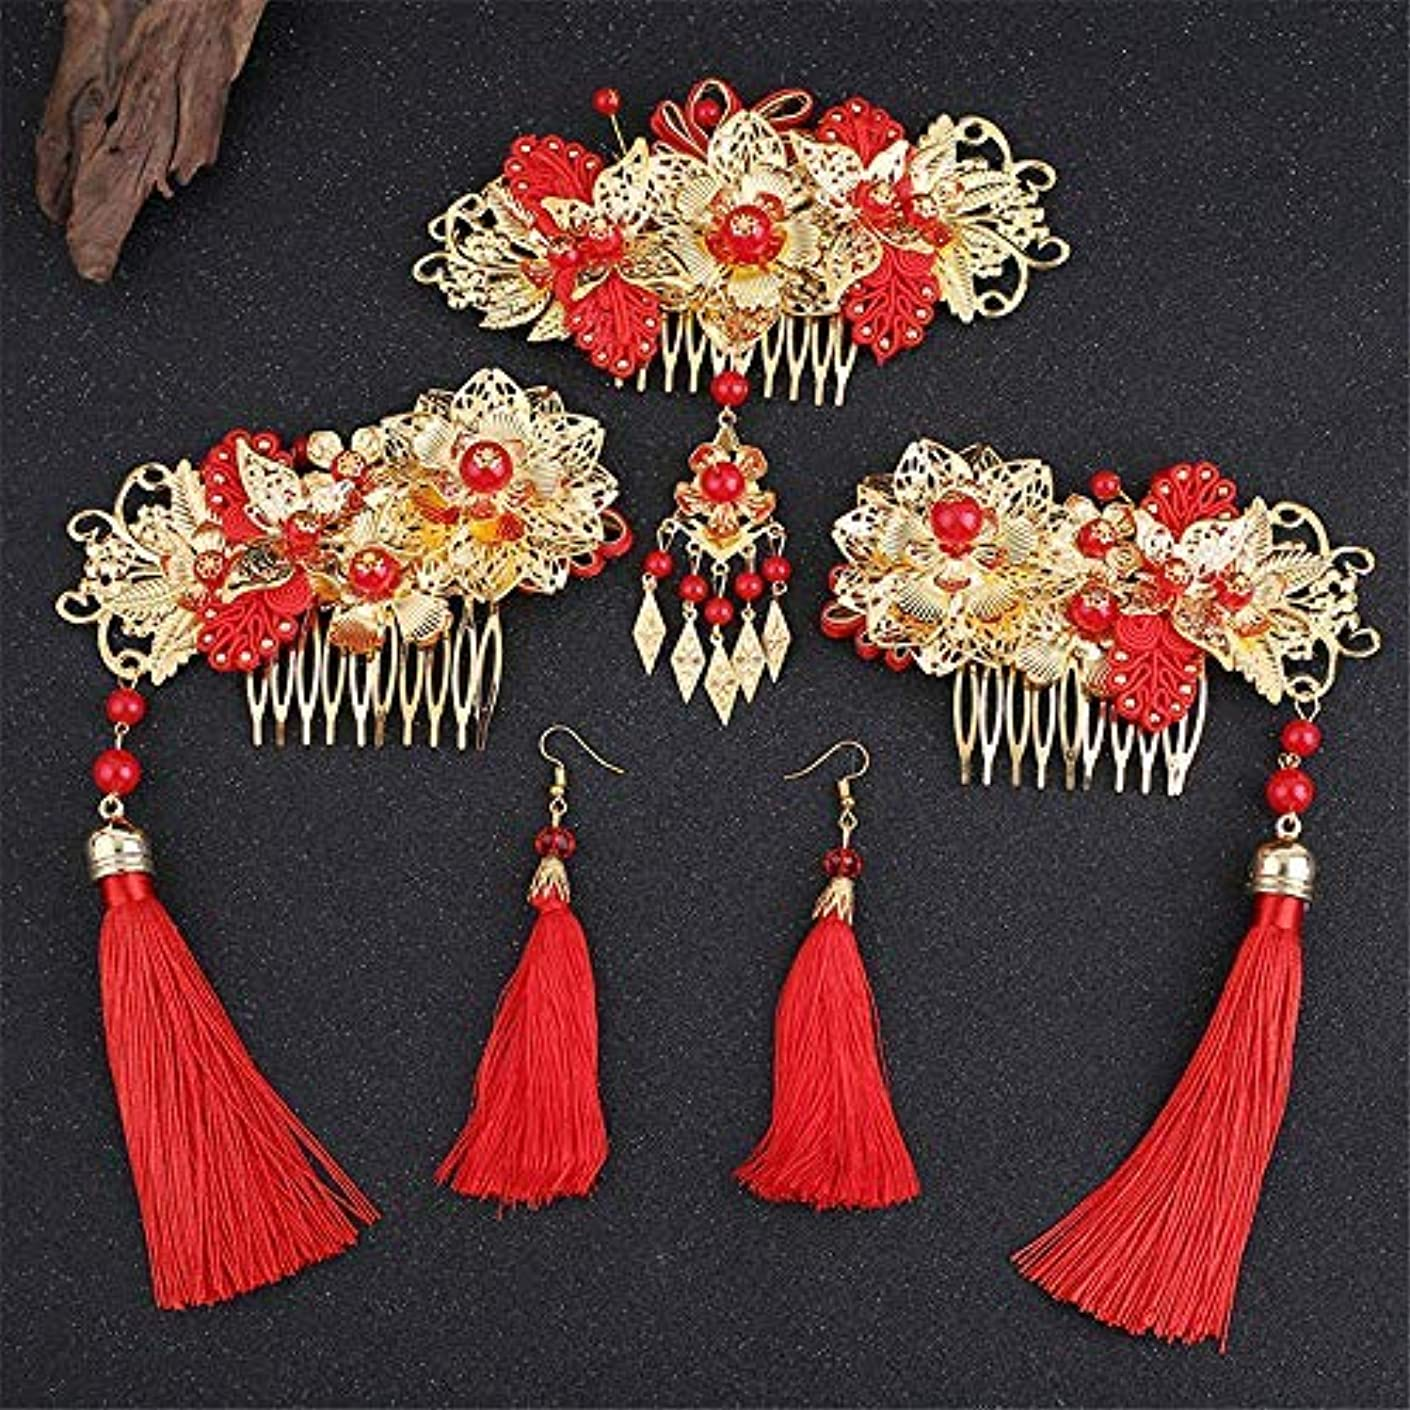 完全に垂直くぼみWedding Classical Traditional Chinese Wedding Bride Hair Accessory With Combs wedding accessories [並行輸入品]